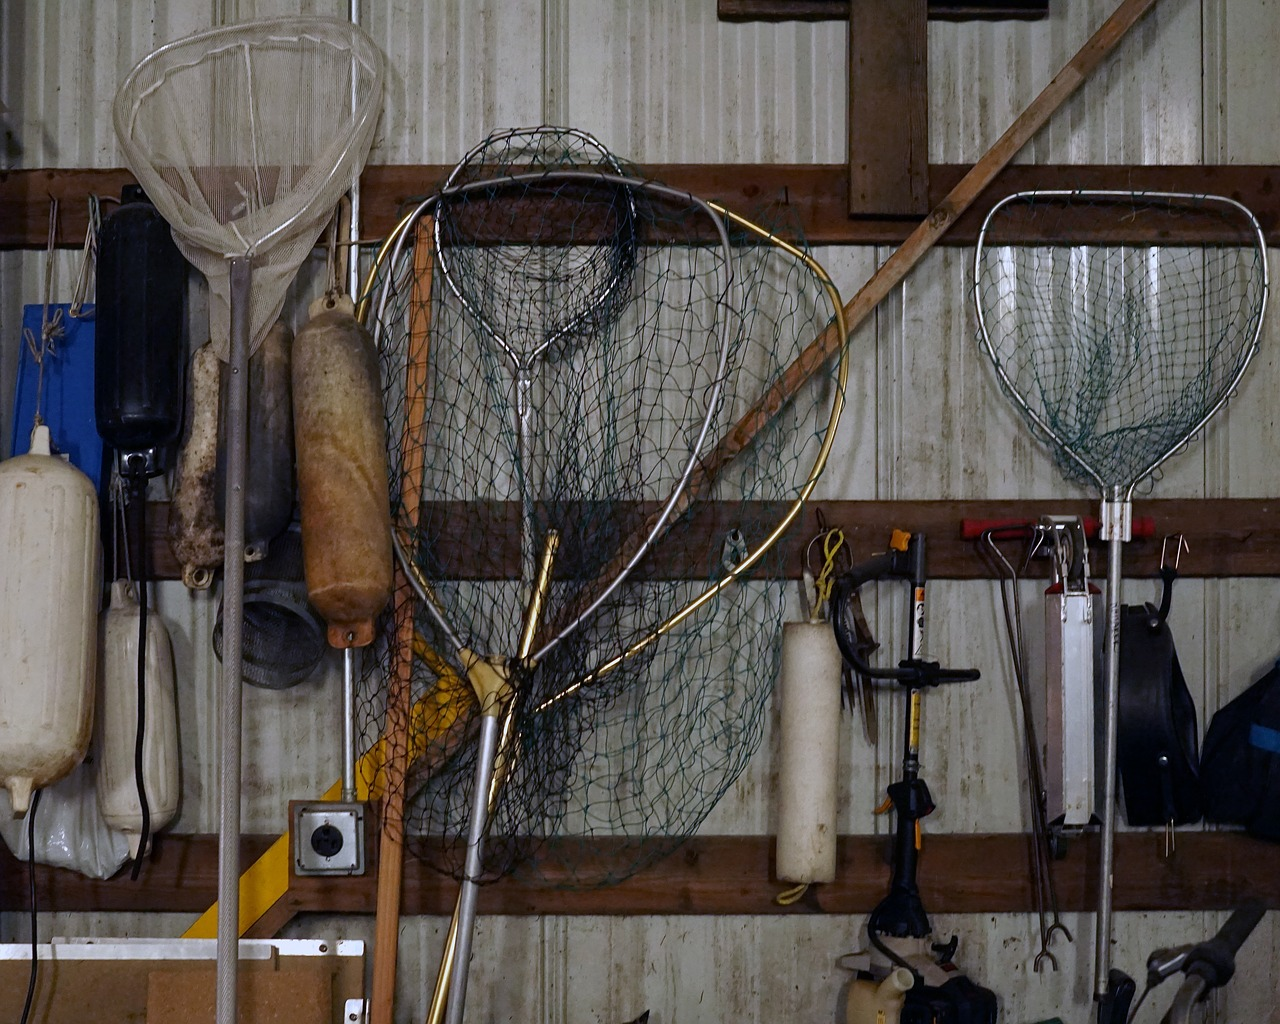 Professional Moving Advice for Relocating with Fishing Gear